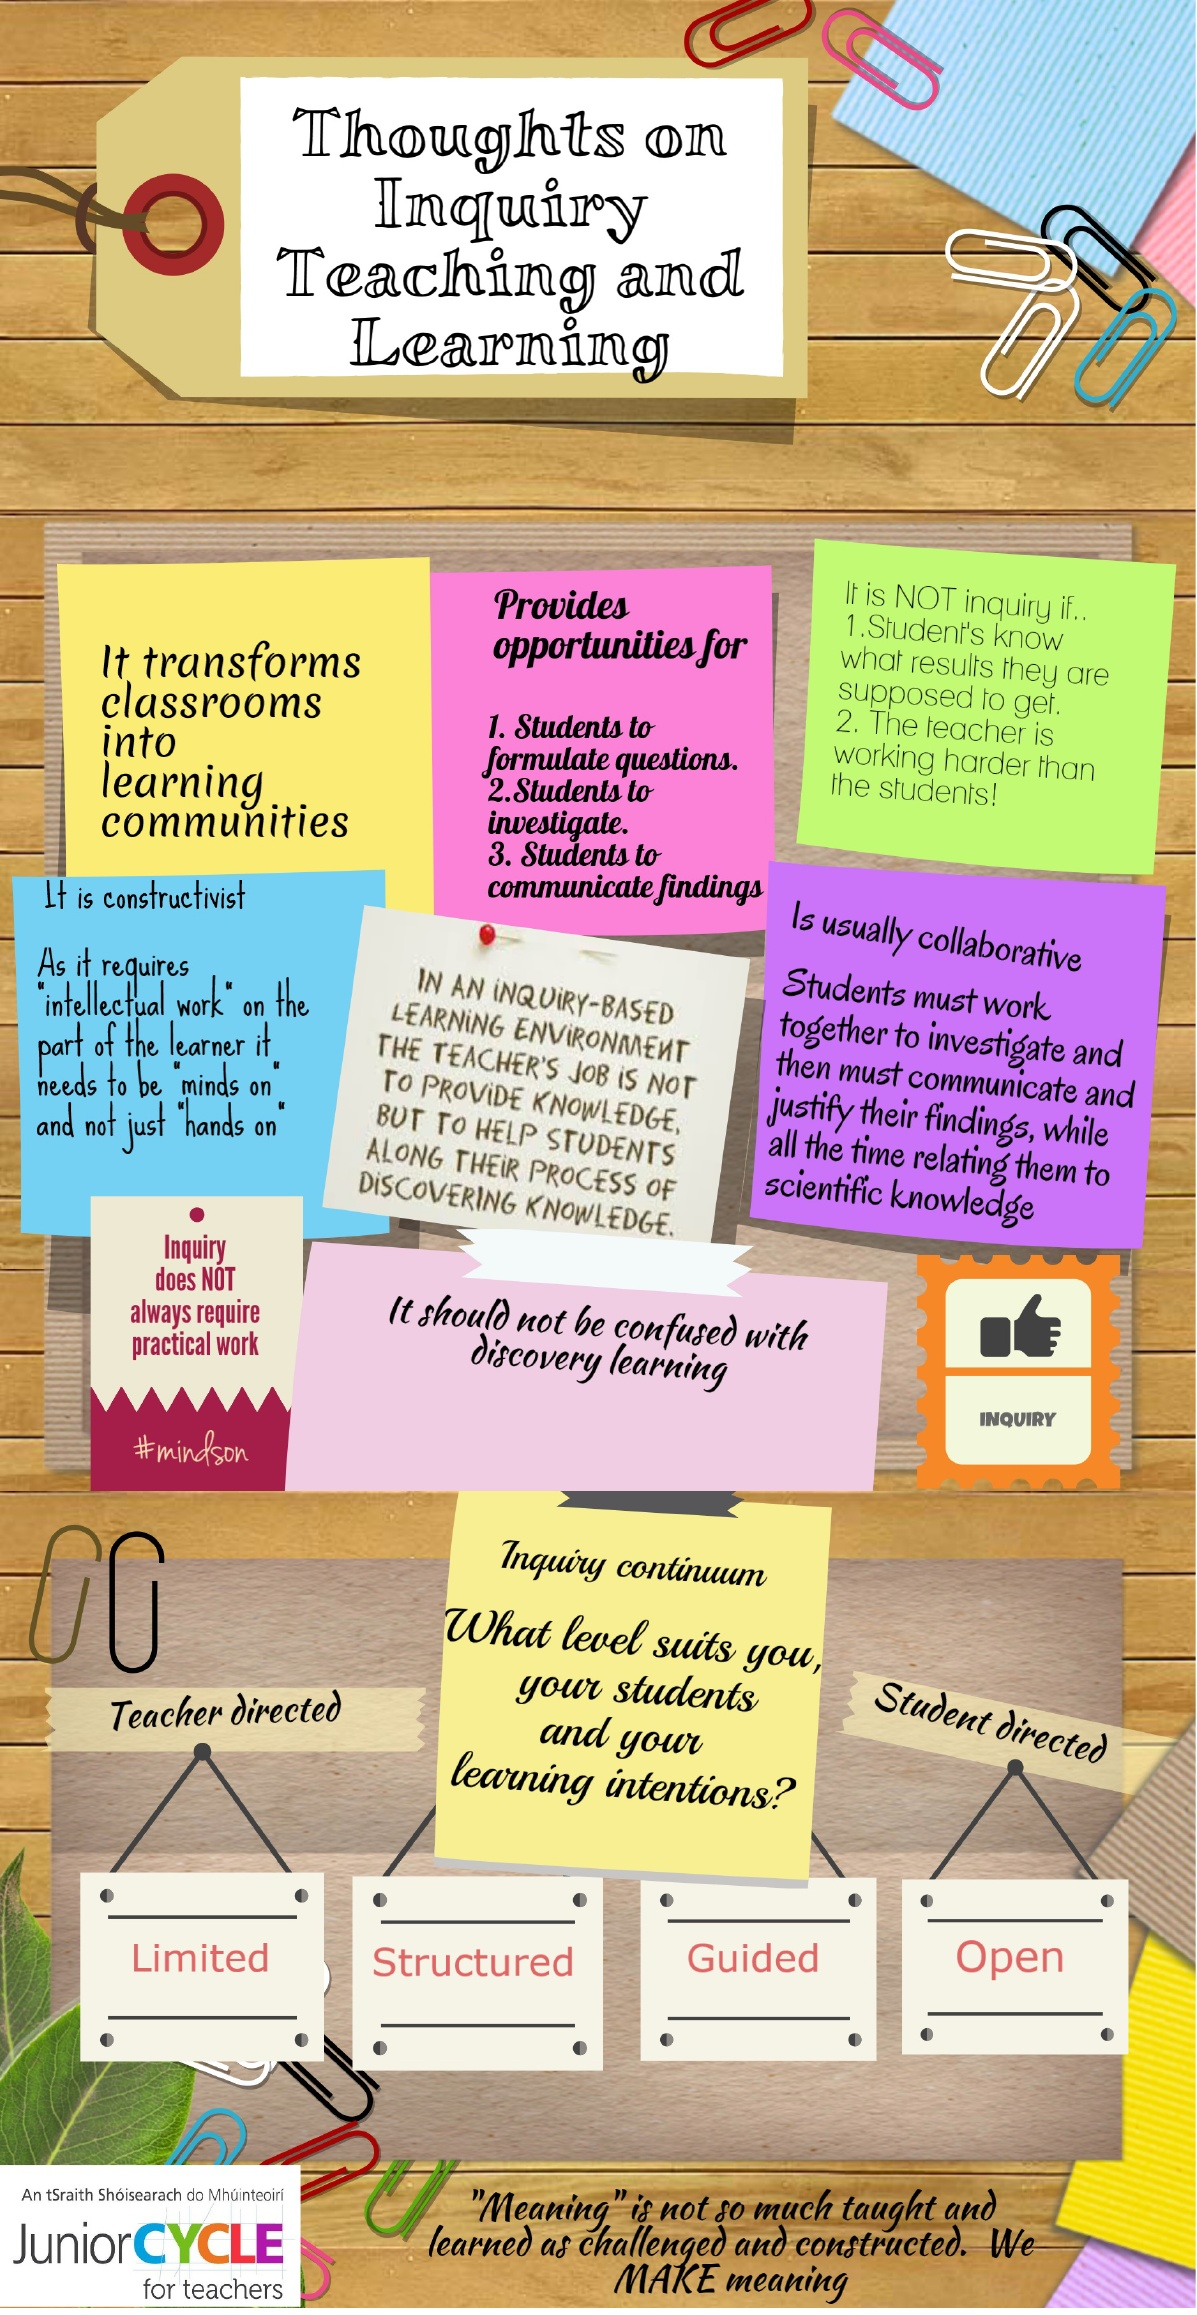 Thoughts on Inquiry Teaching and Learning - Infographic